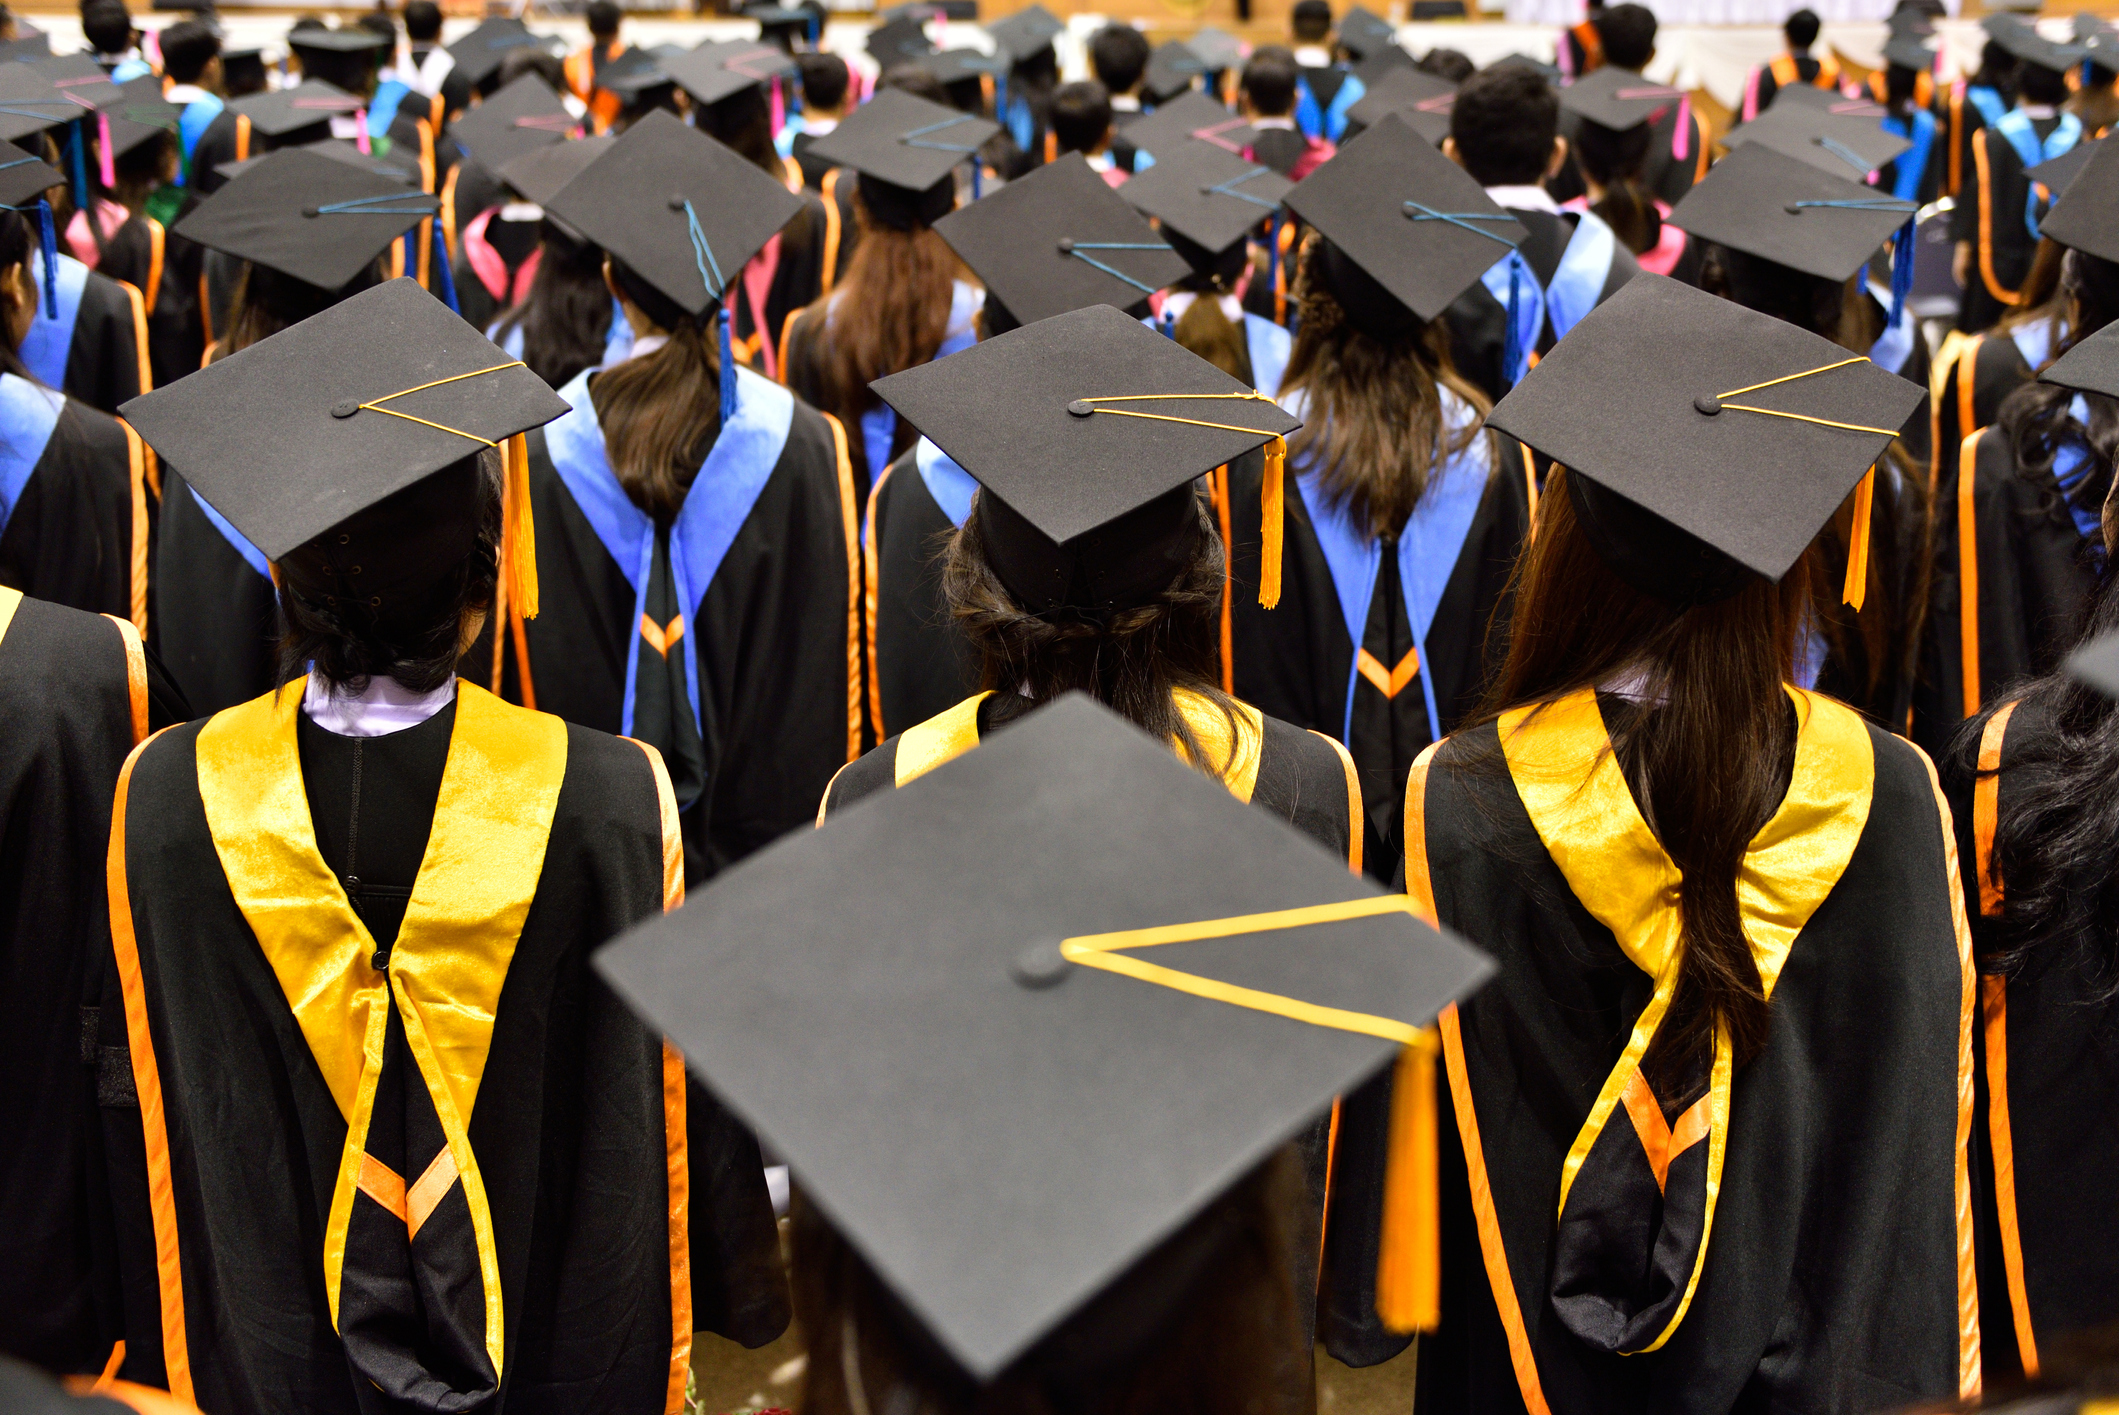 College students graduate in a commencement ceremony.